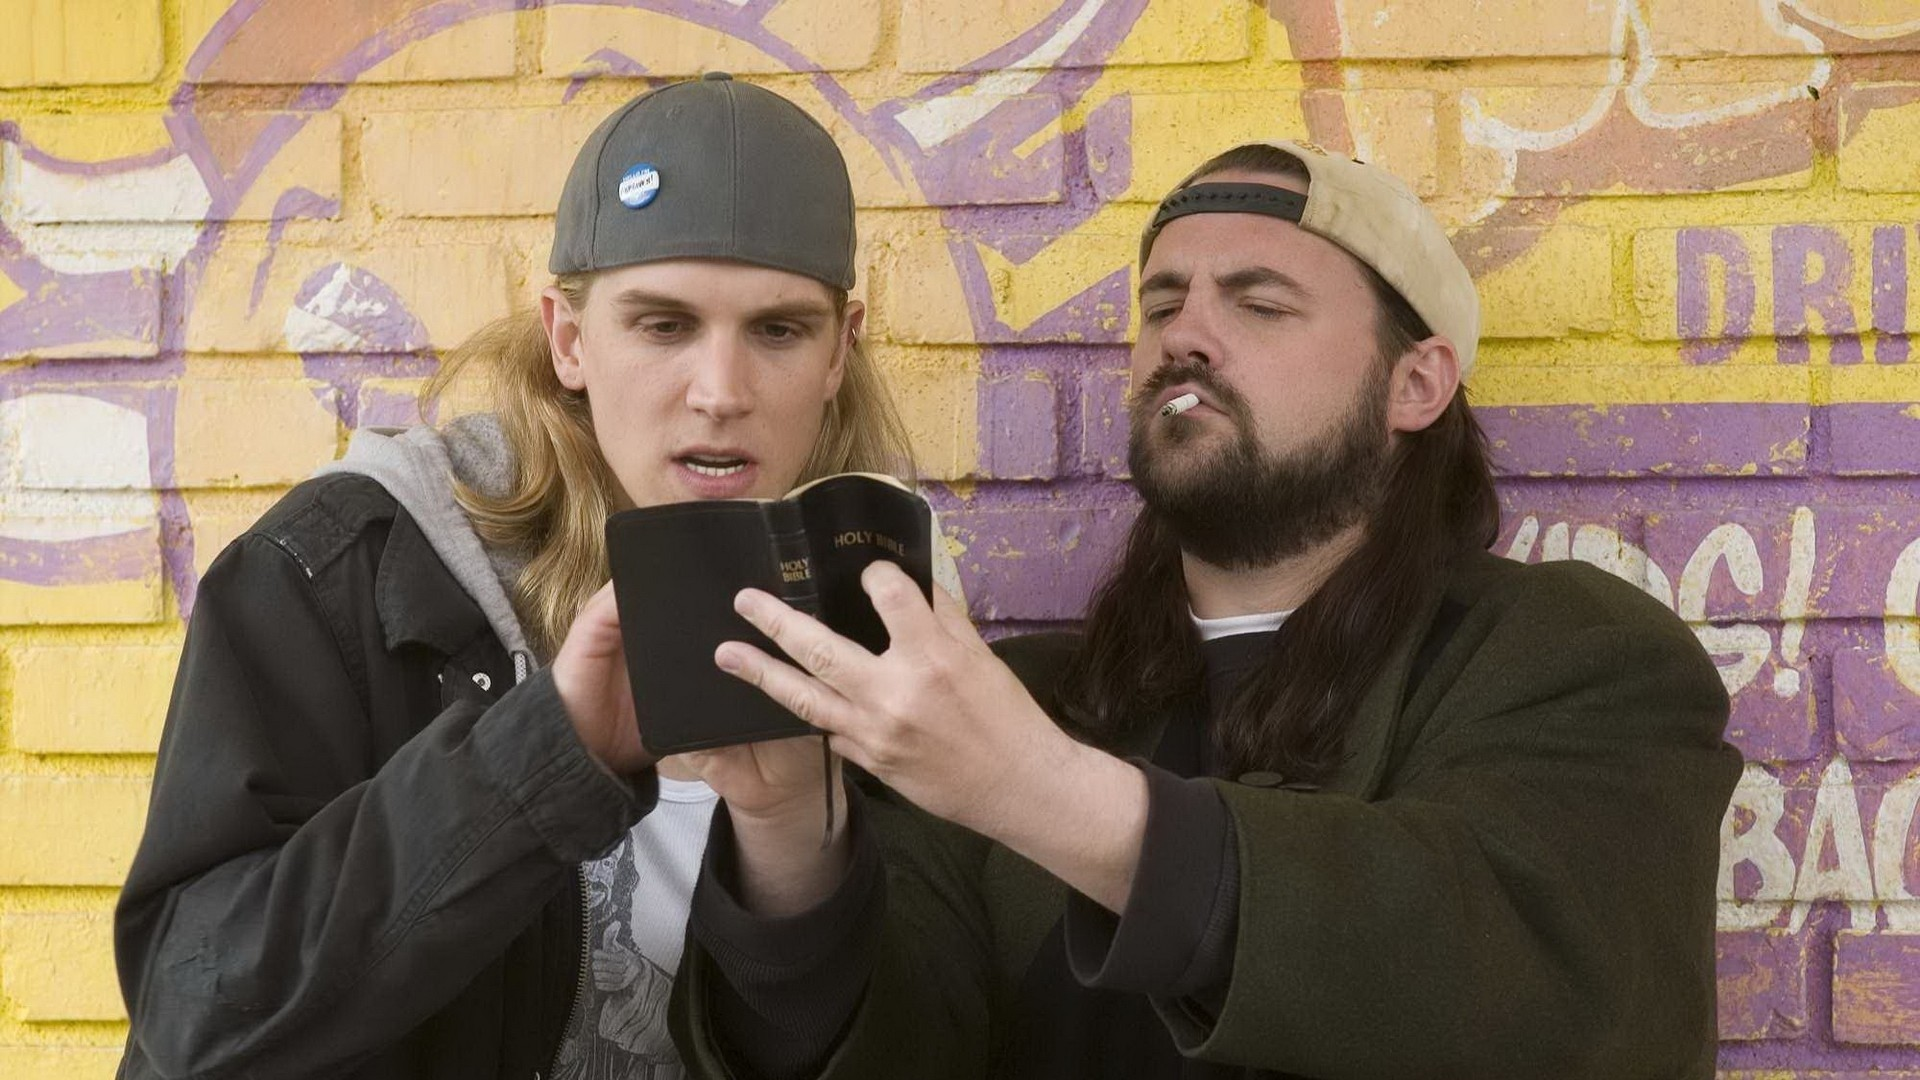 1920x1080  movies film jay and silent bob kevin smith dogma jason mewes  wallpaper |  | 29977 | WallpaperUP